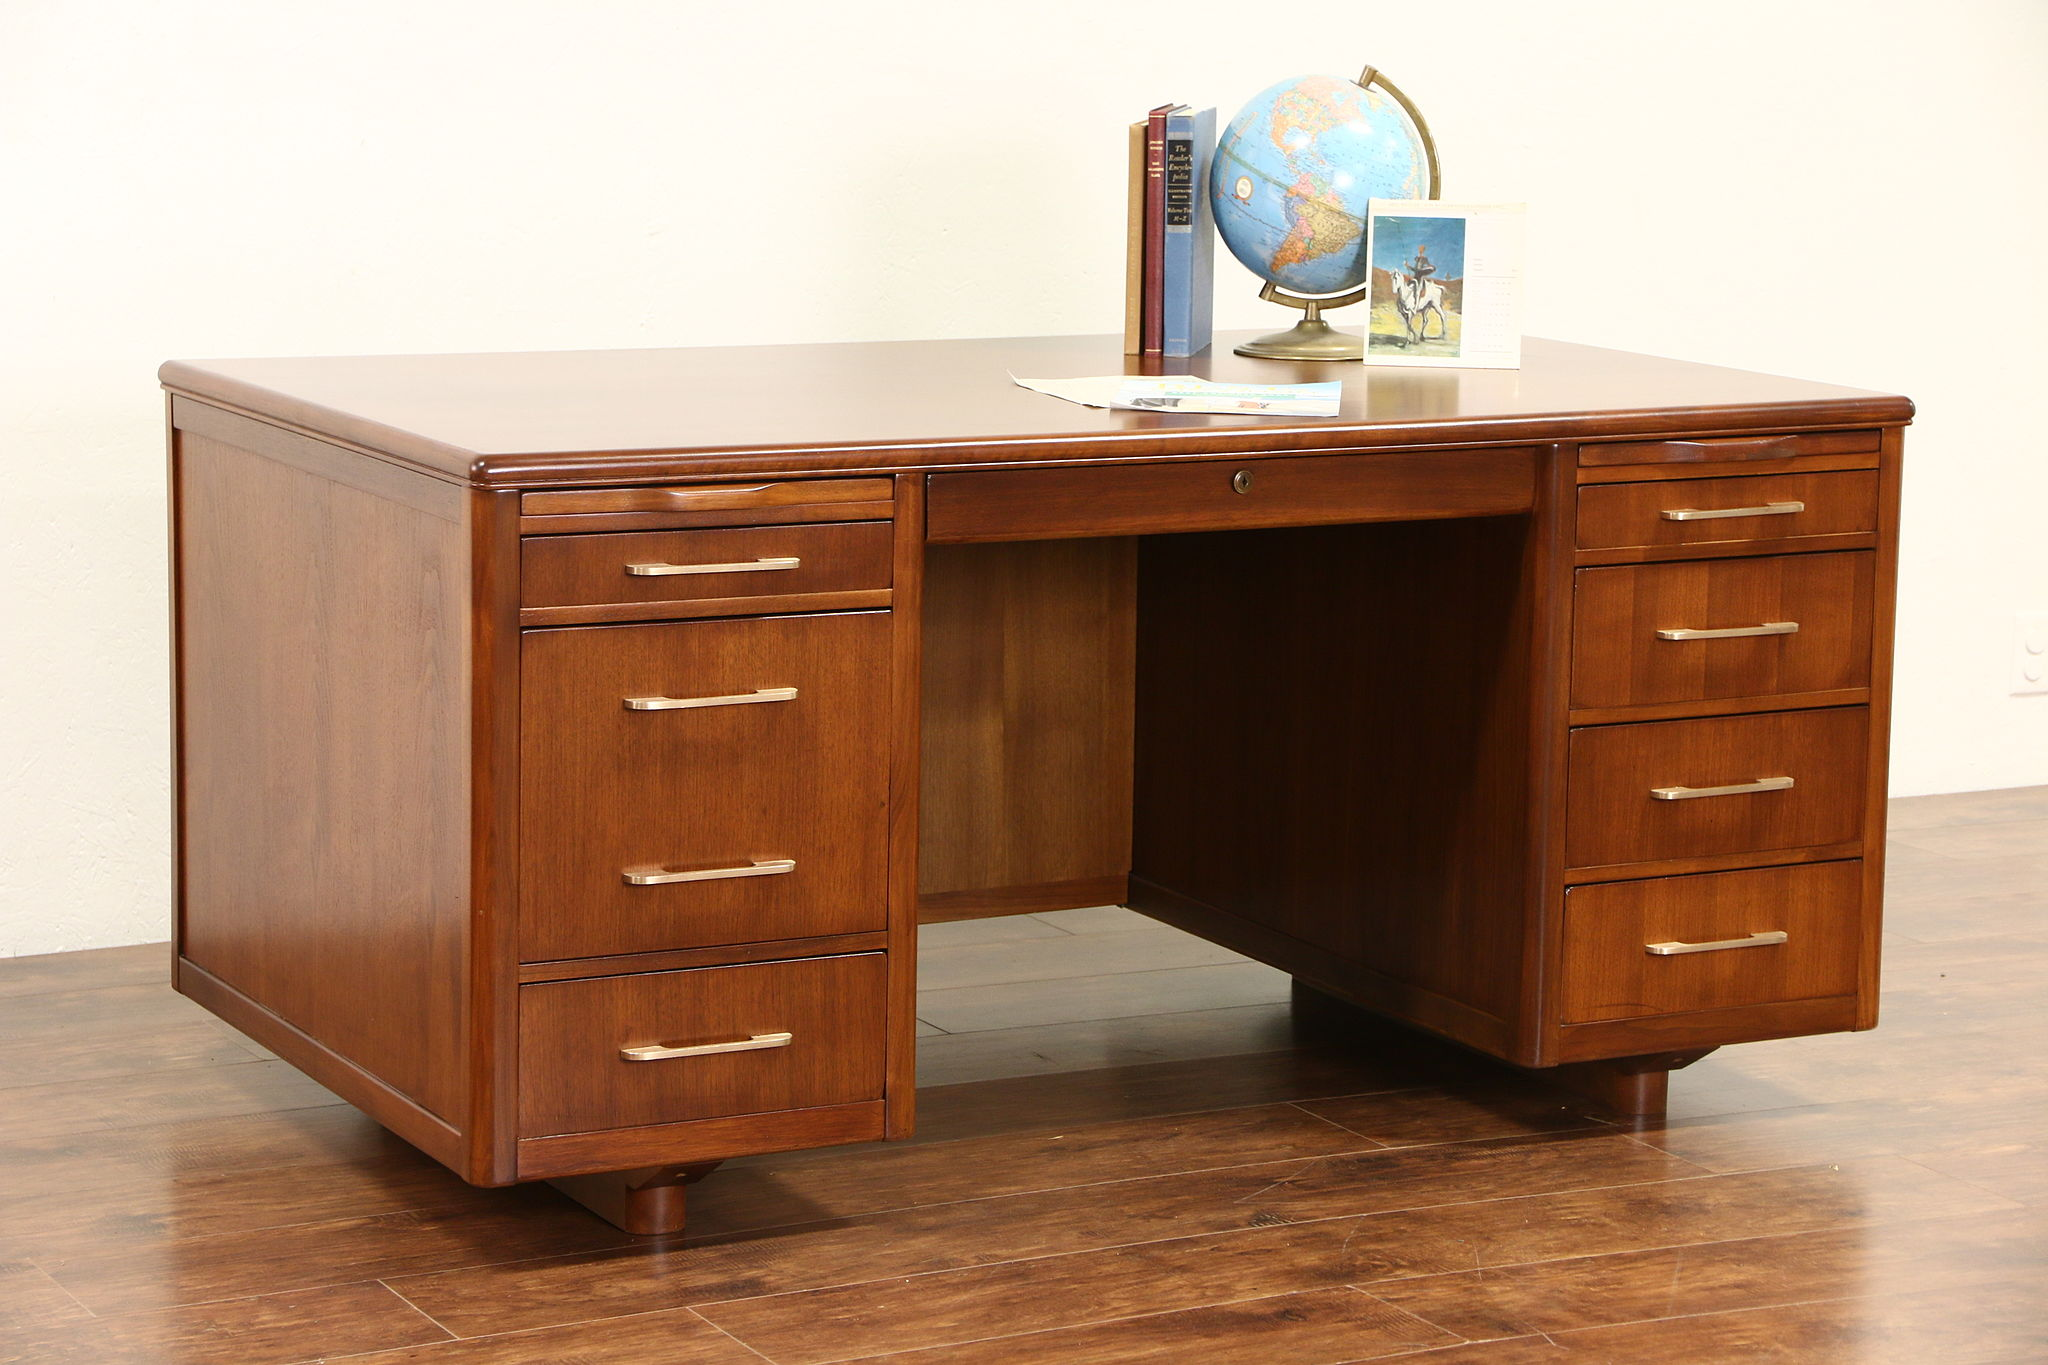 Sold Midcentury Modern 1960 S Vintage Executive Desk